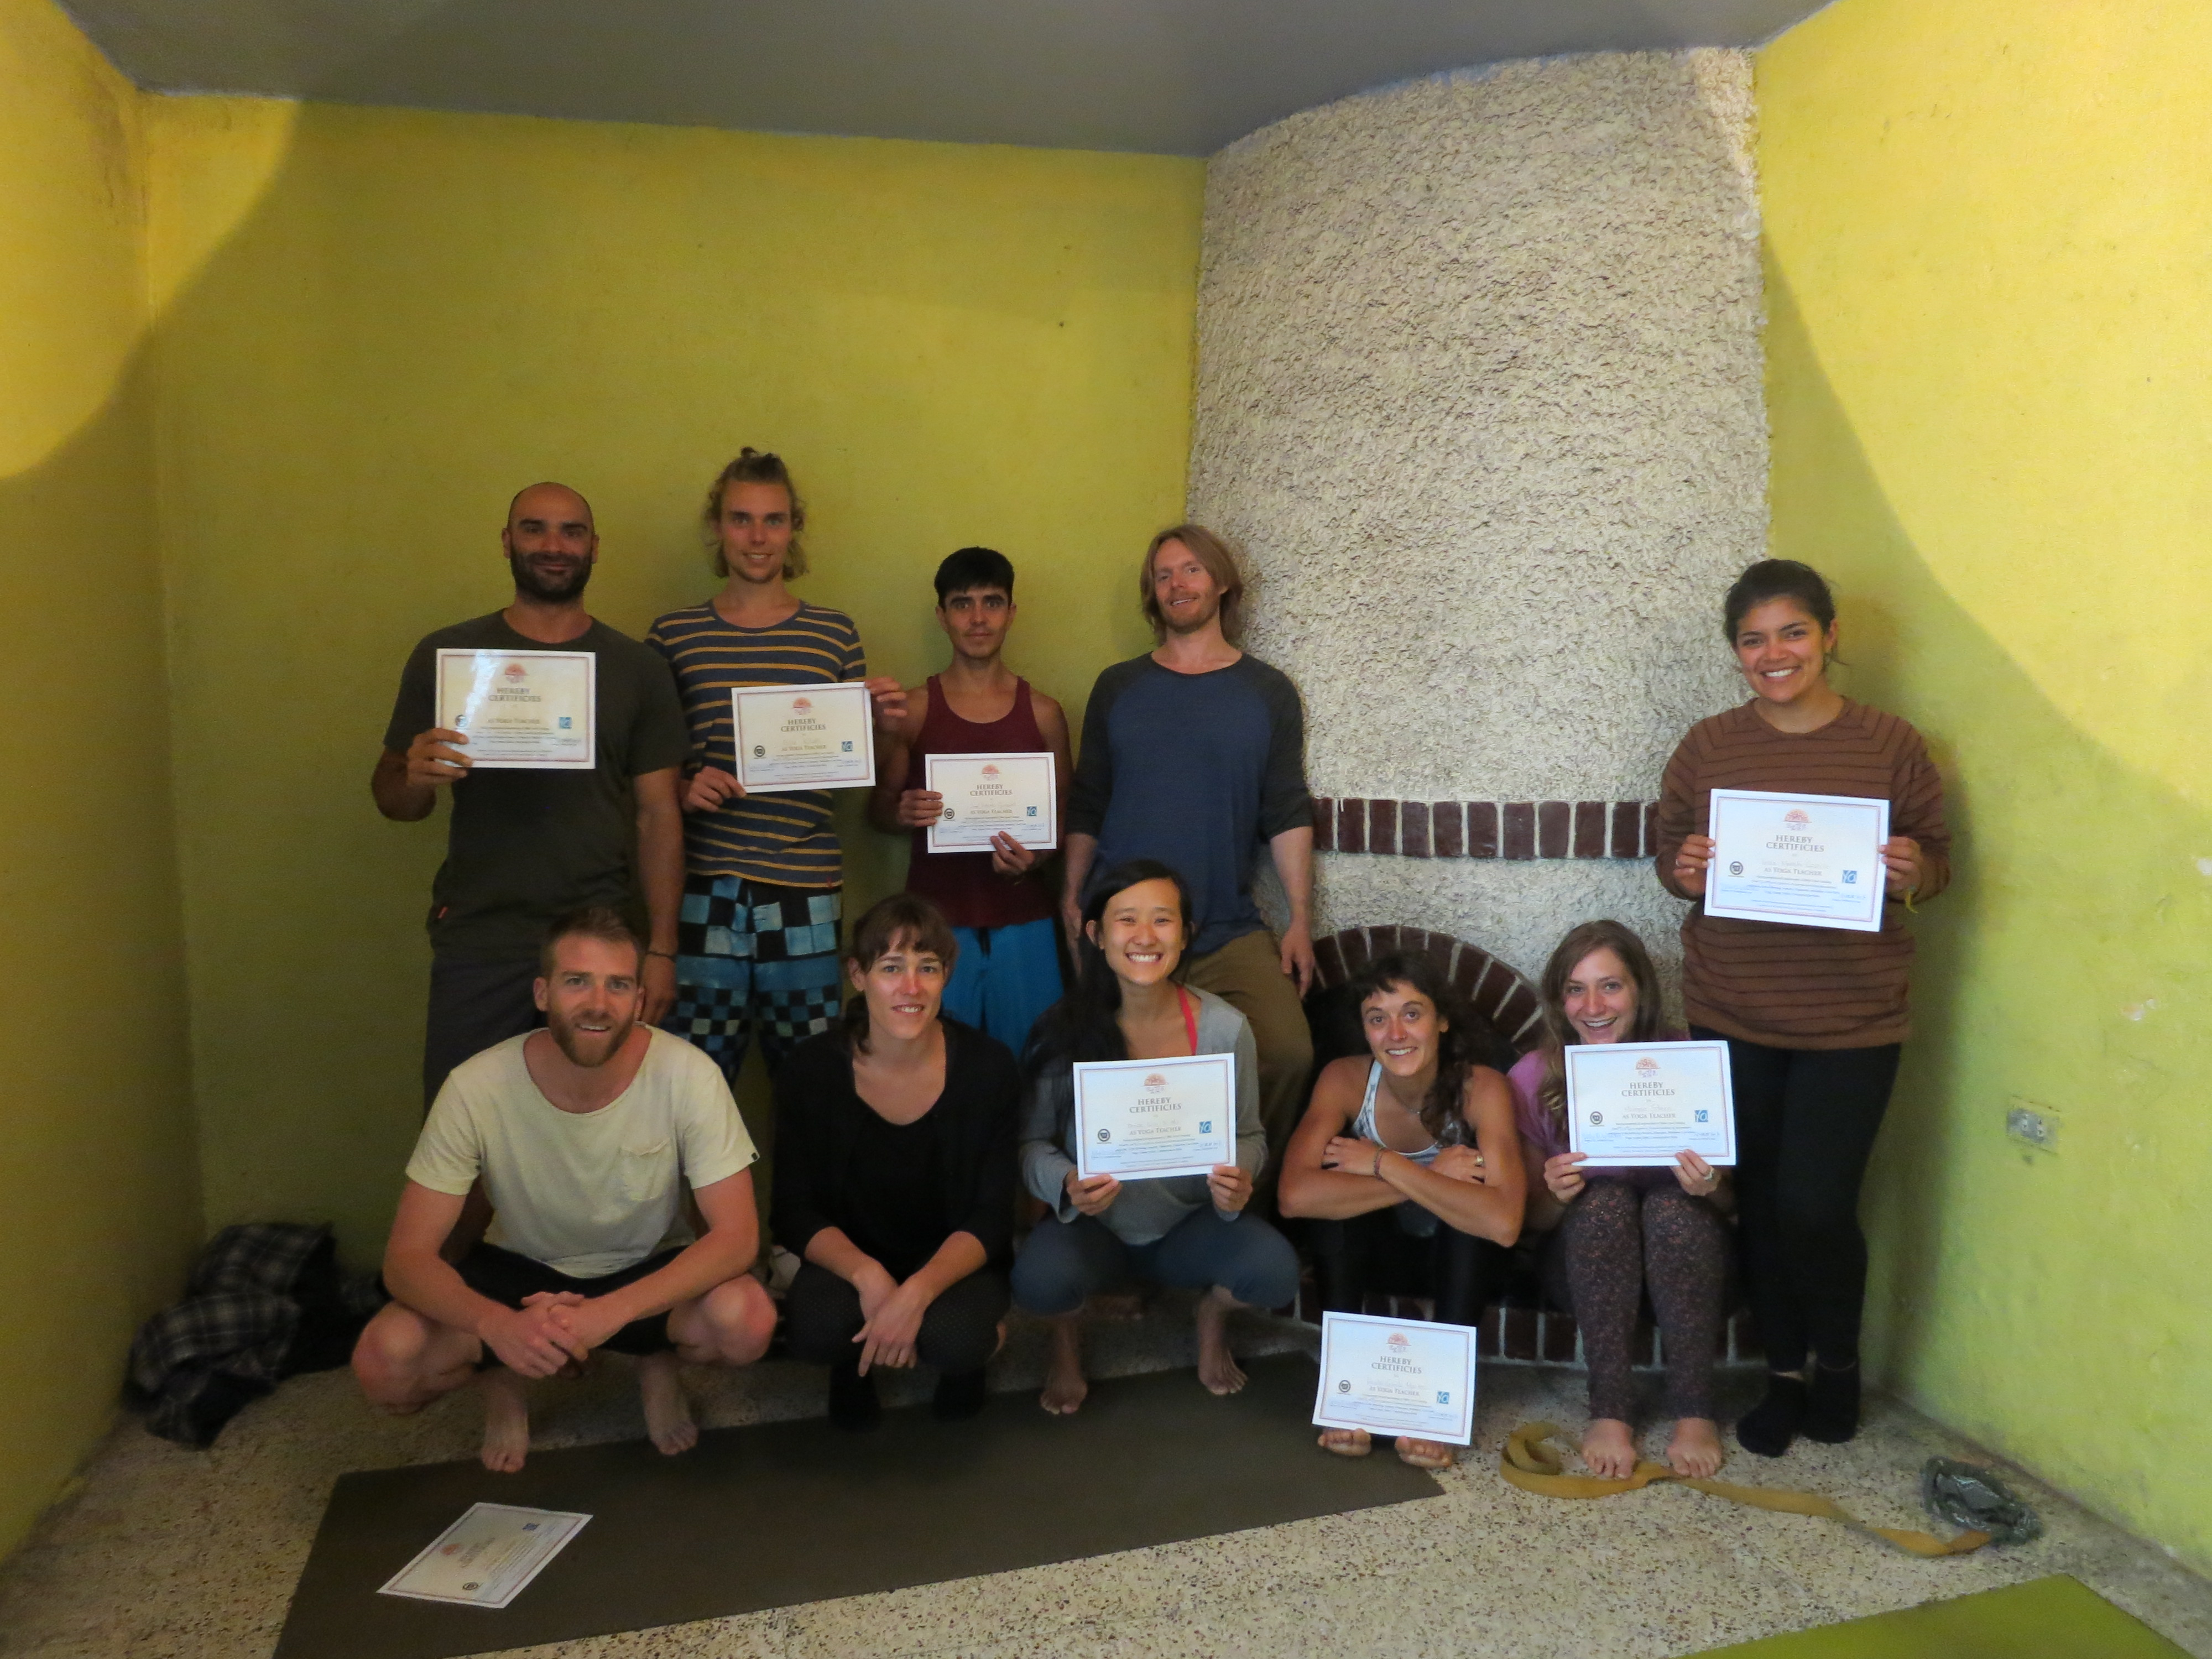 Denise is a certified yoga teacher! Anyone interested in learning from her? (You have to be in Guatemala :p)